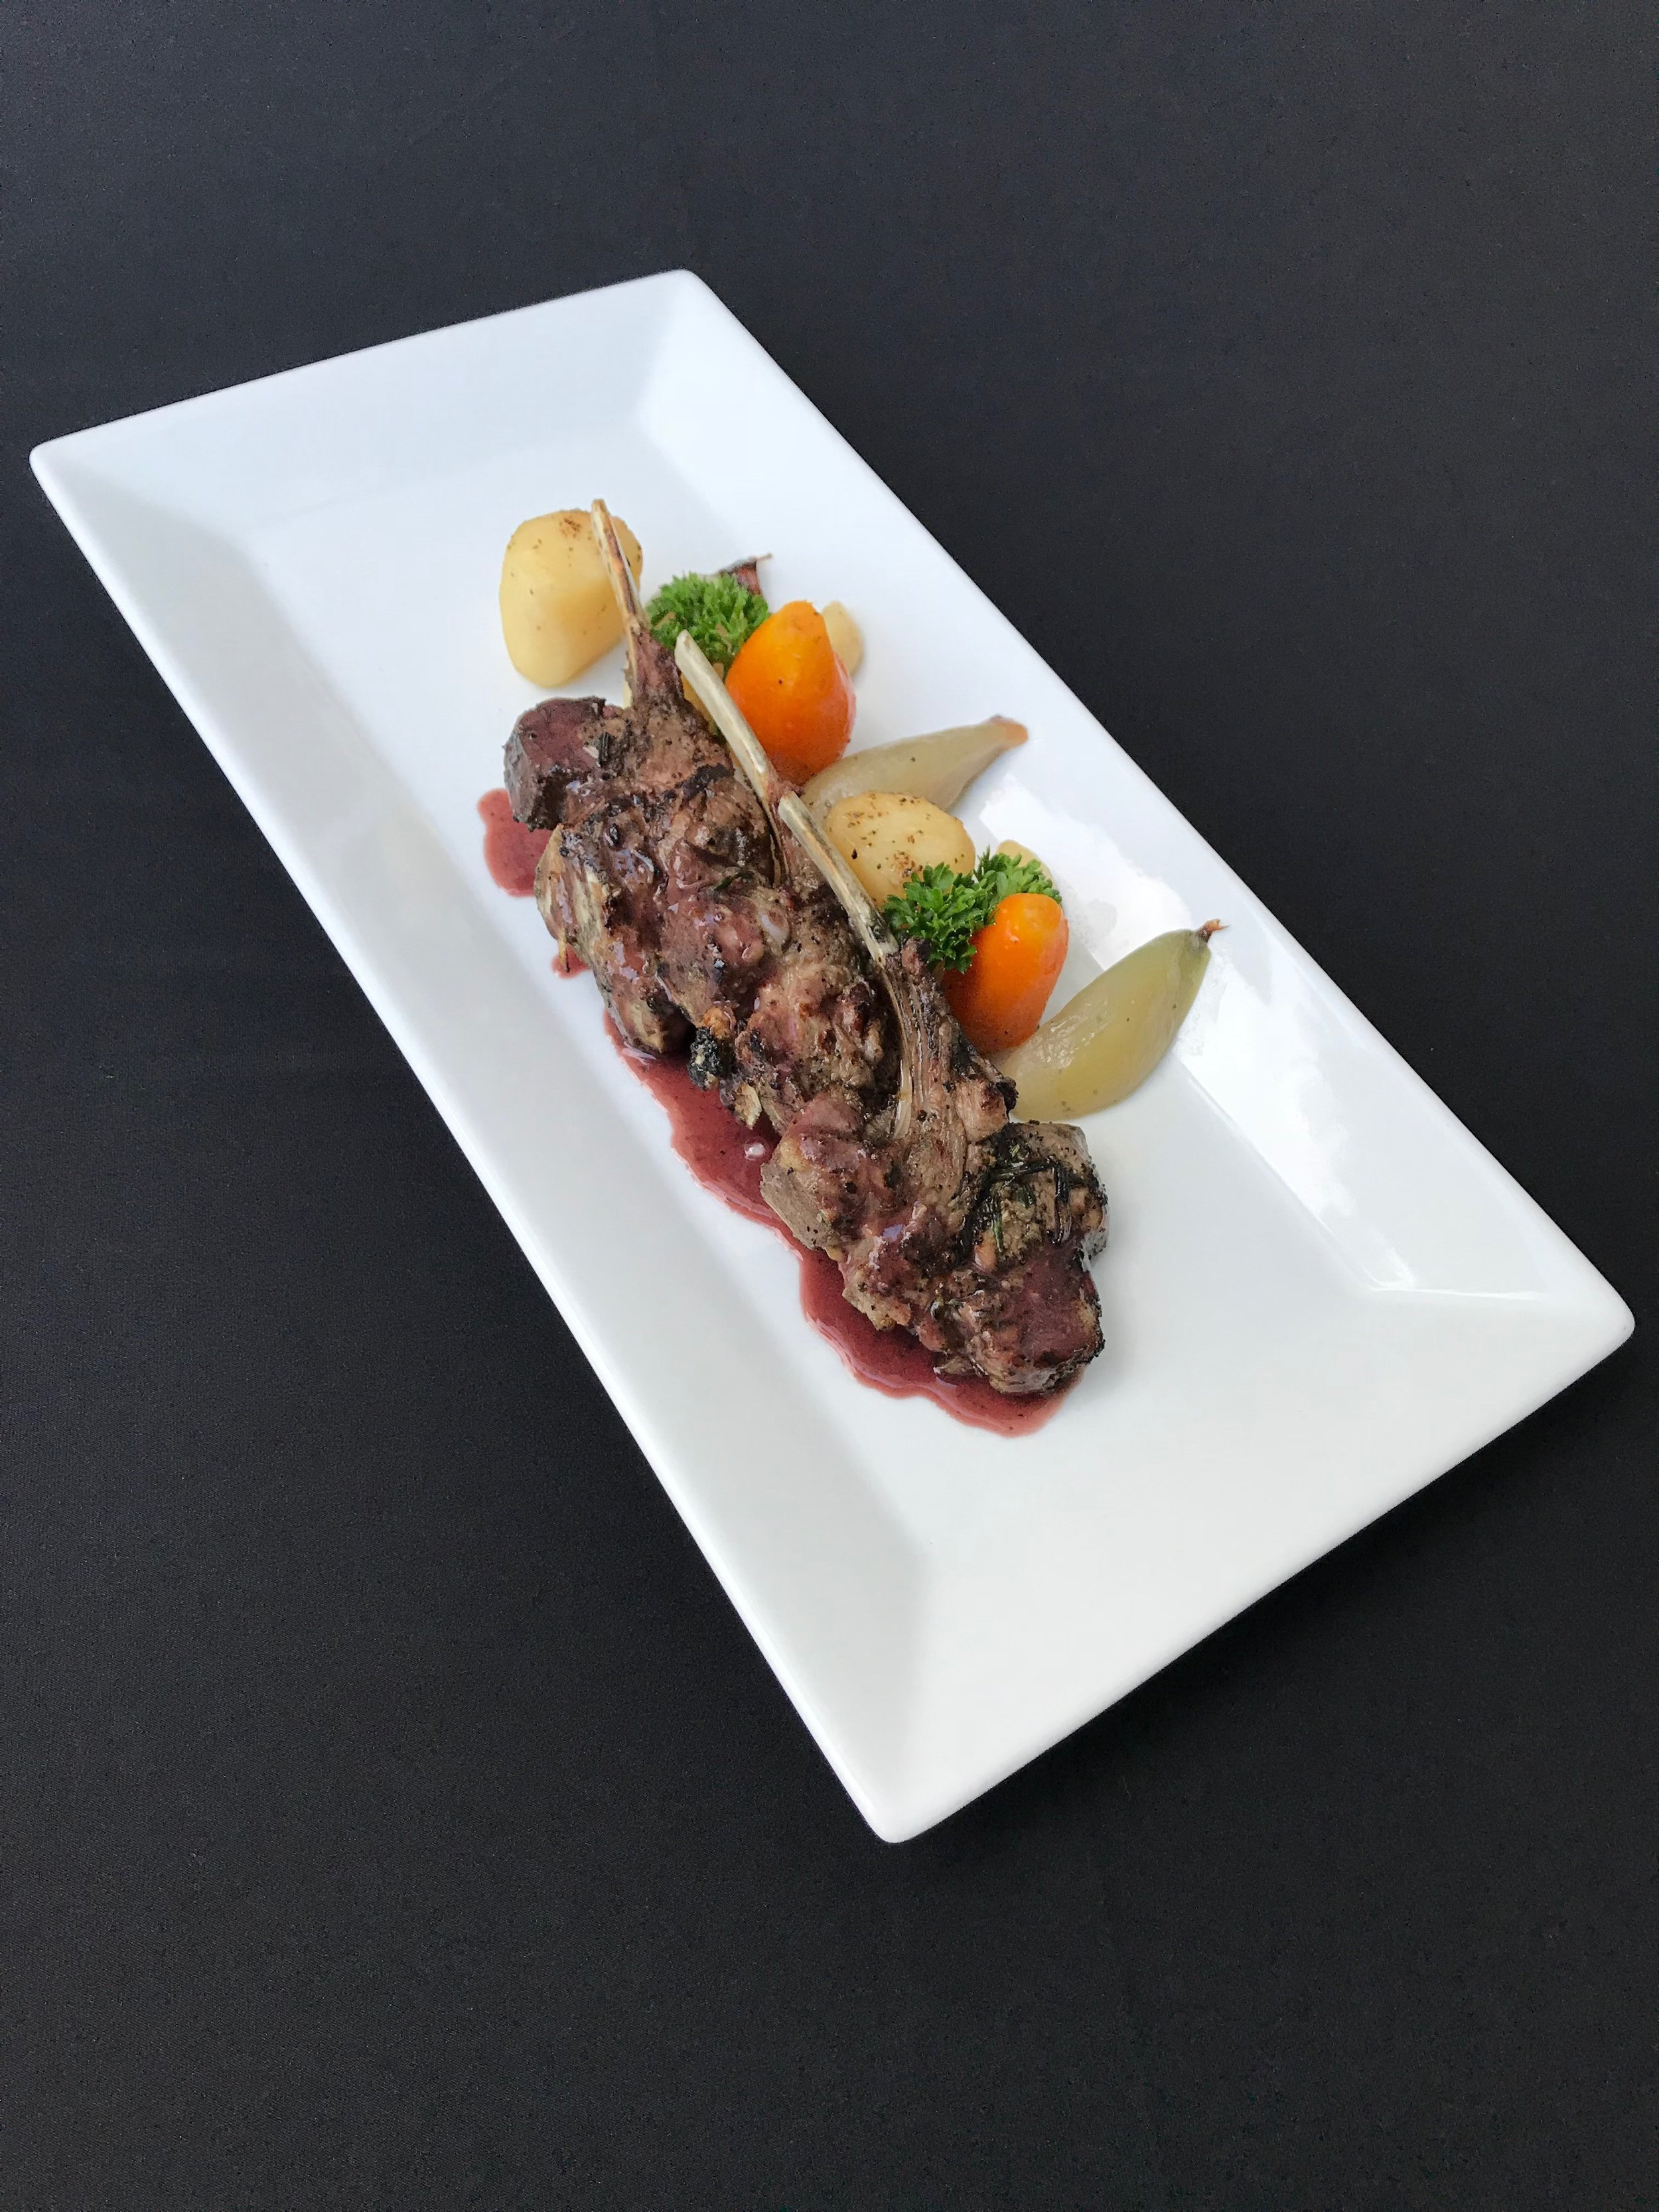 Lamb Chops - Grilled lamb rib-chops with roasted root vegetables and lamb au jus